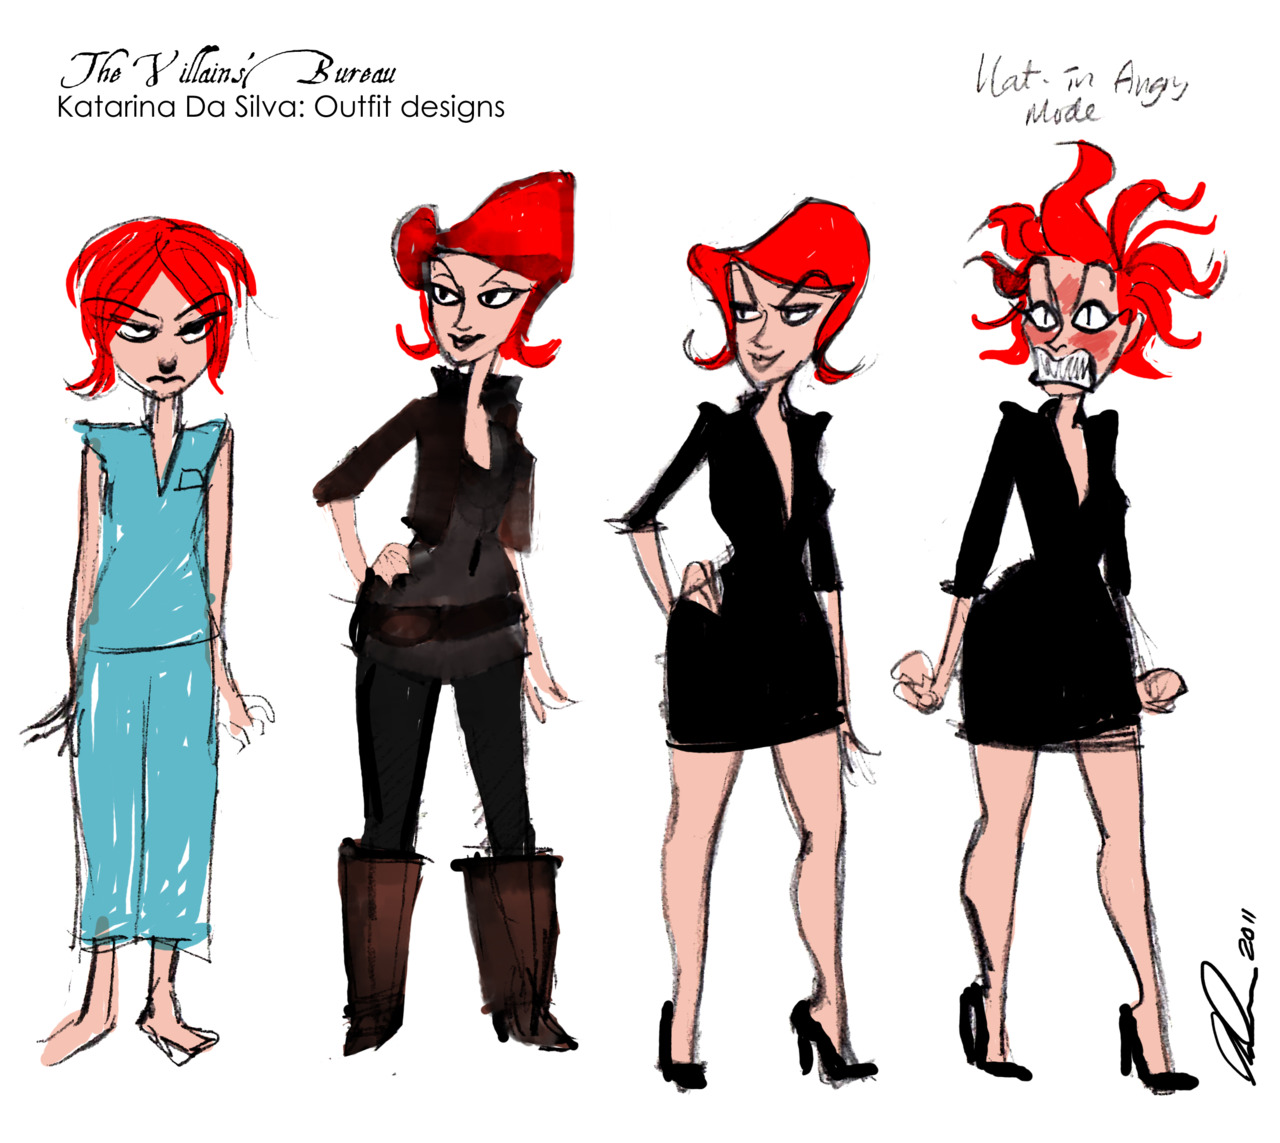 """Various outfit designs for Katarina Da Silva, a character in a project I am working on, tentatively titled the """"Villains' Bureau""""."""